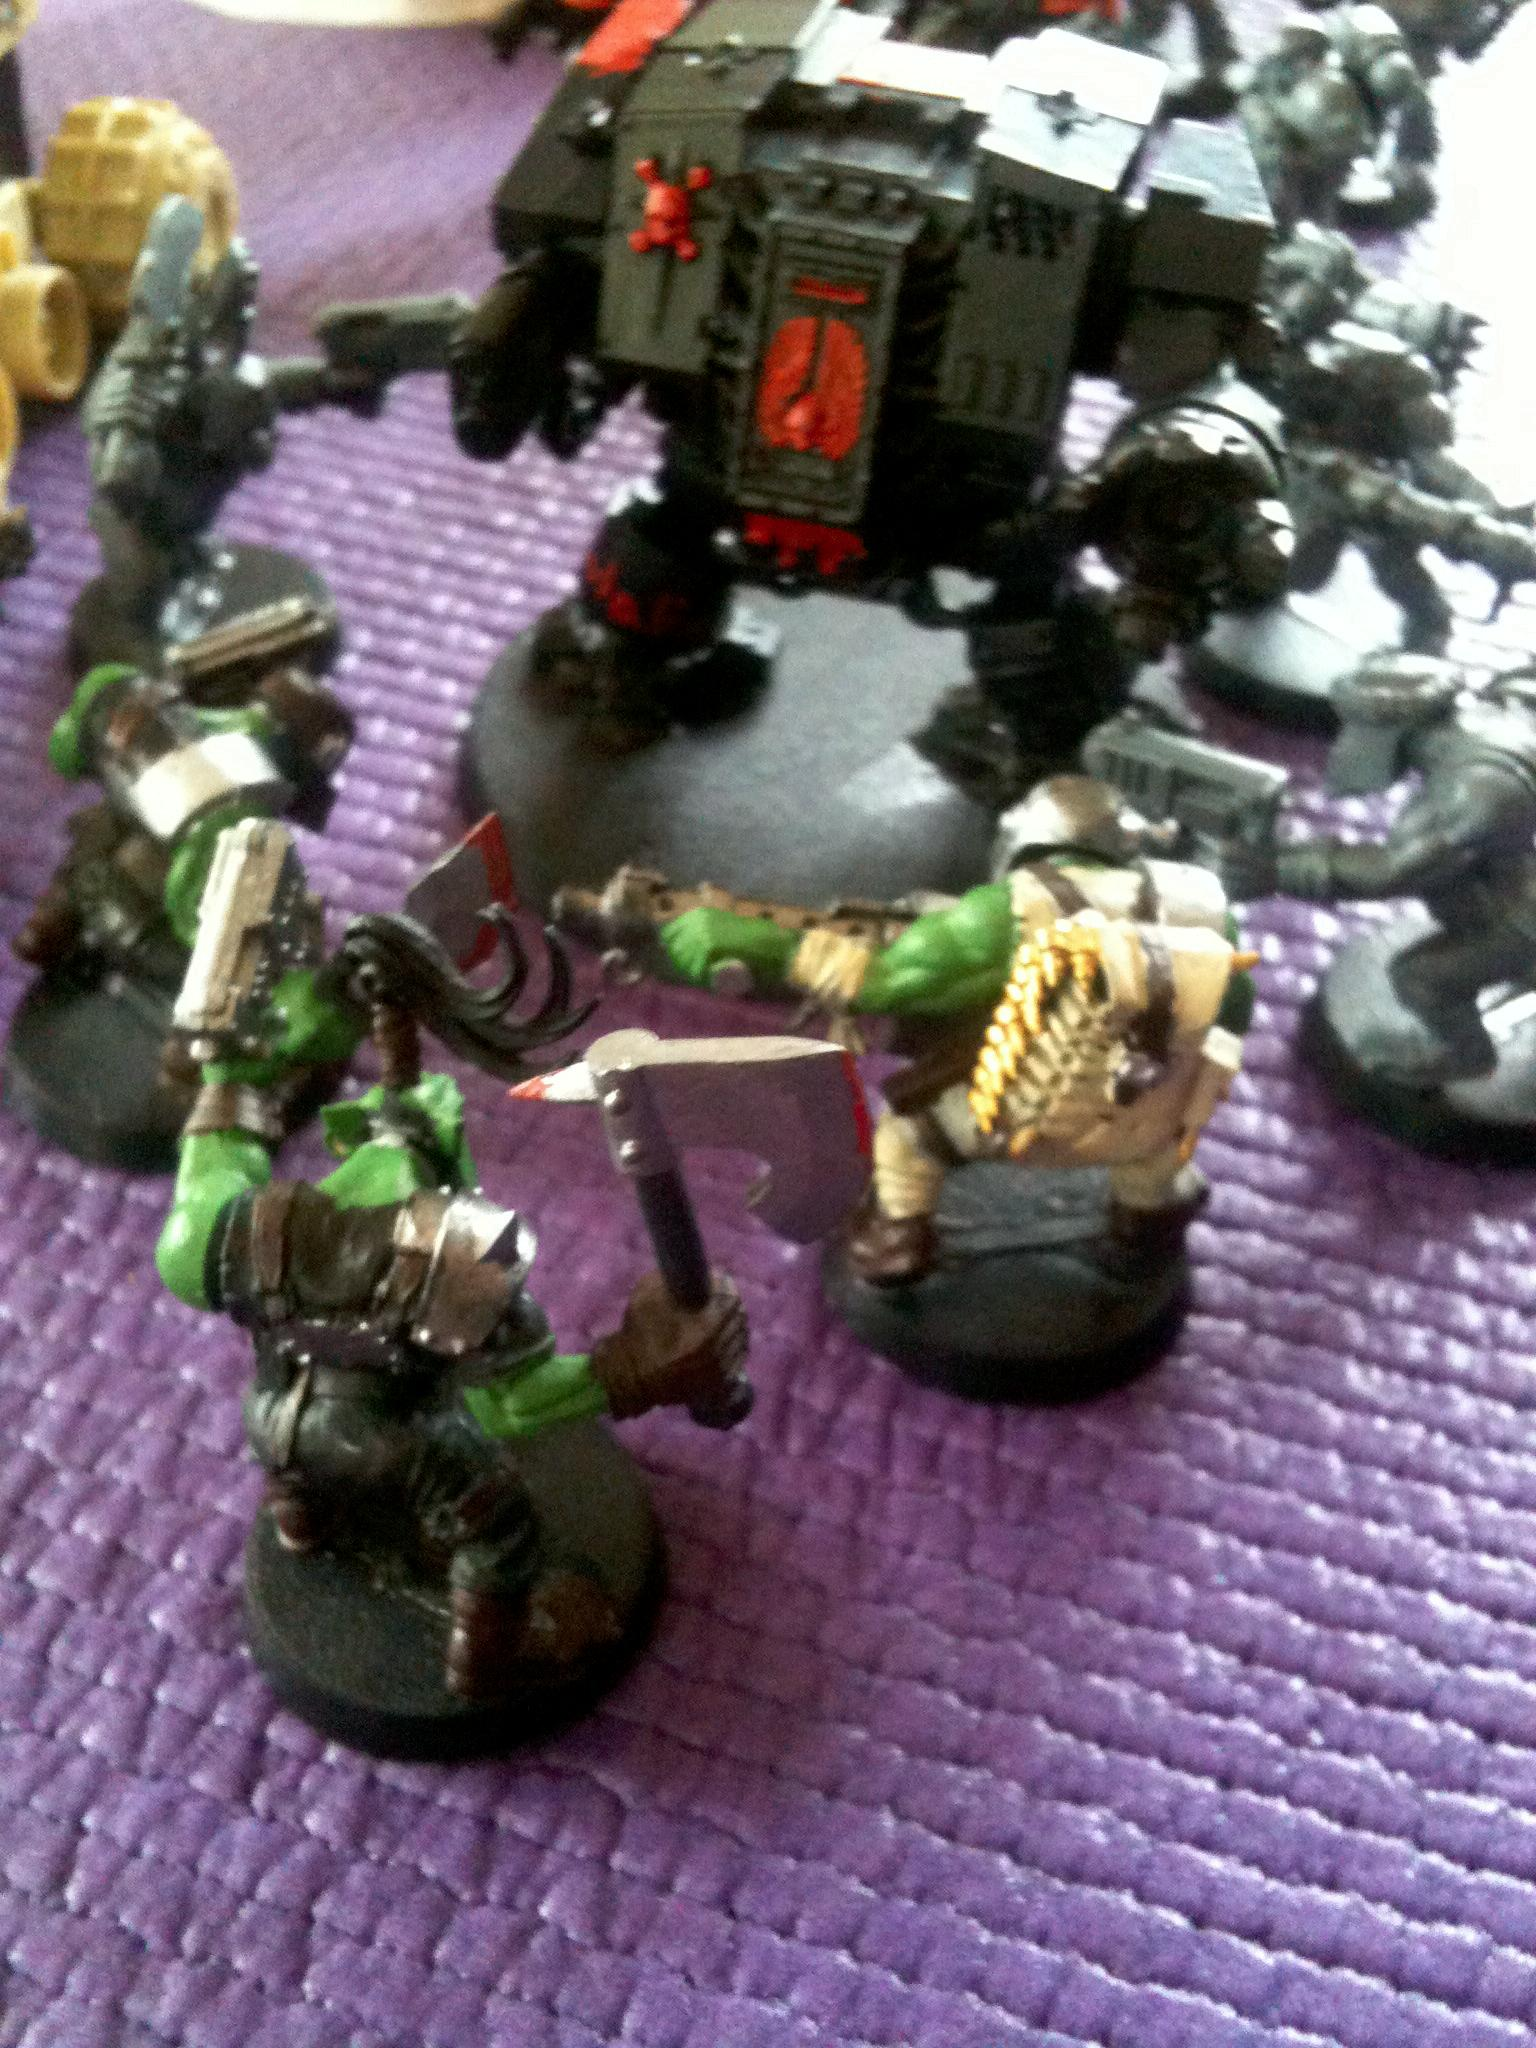 Battle, Boy, Dreadnought, Orks, Space, Space Marines, Warhammer 40,000, Warhammer Fantasy